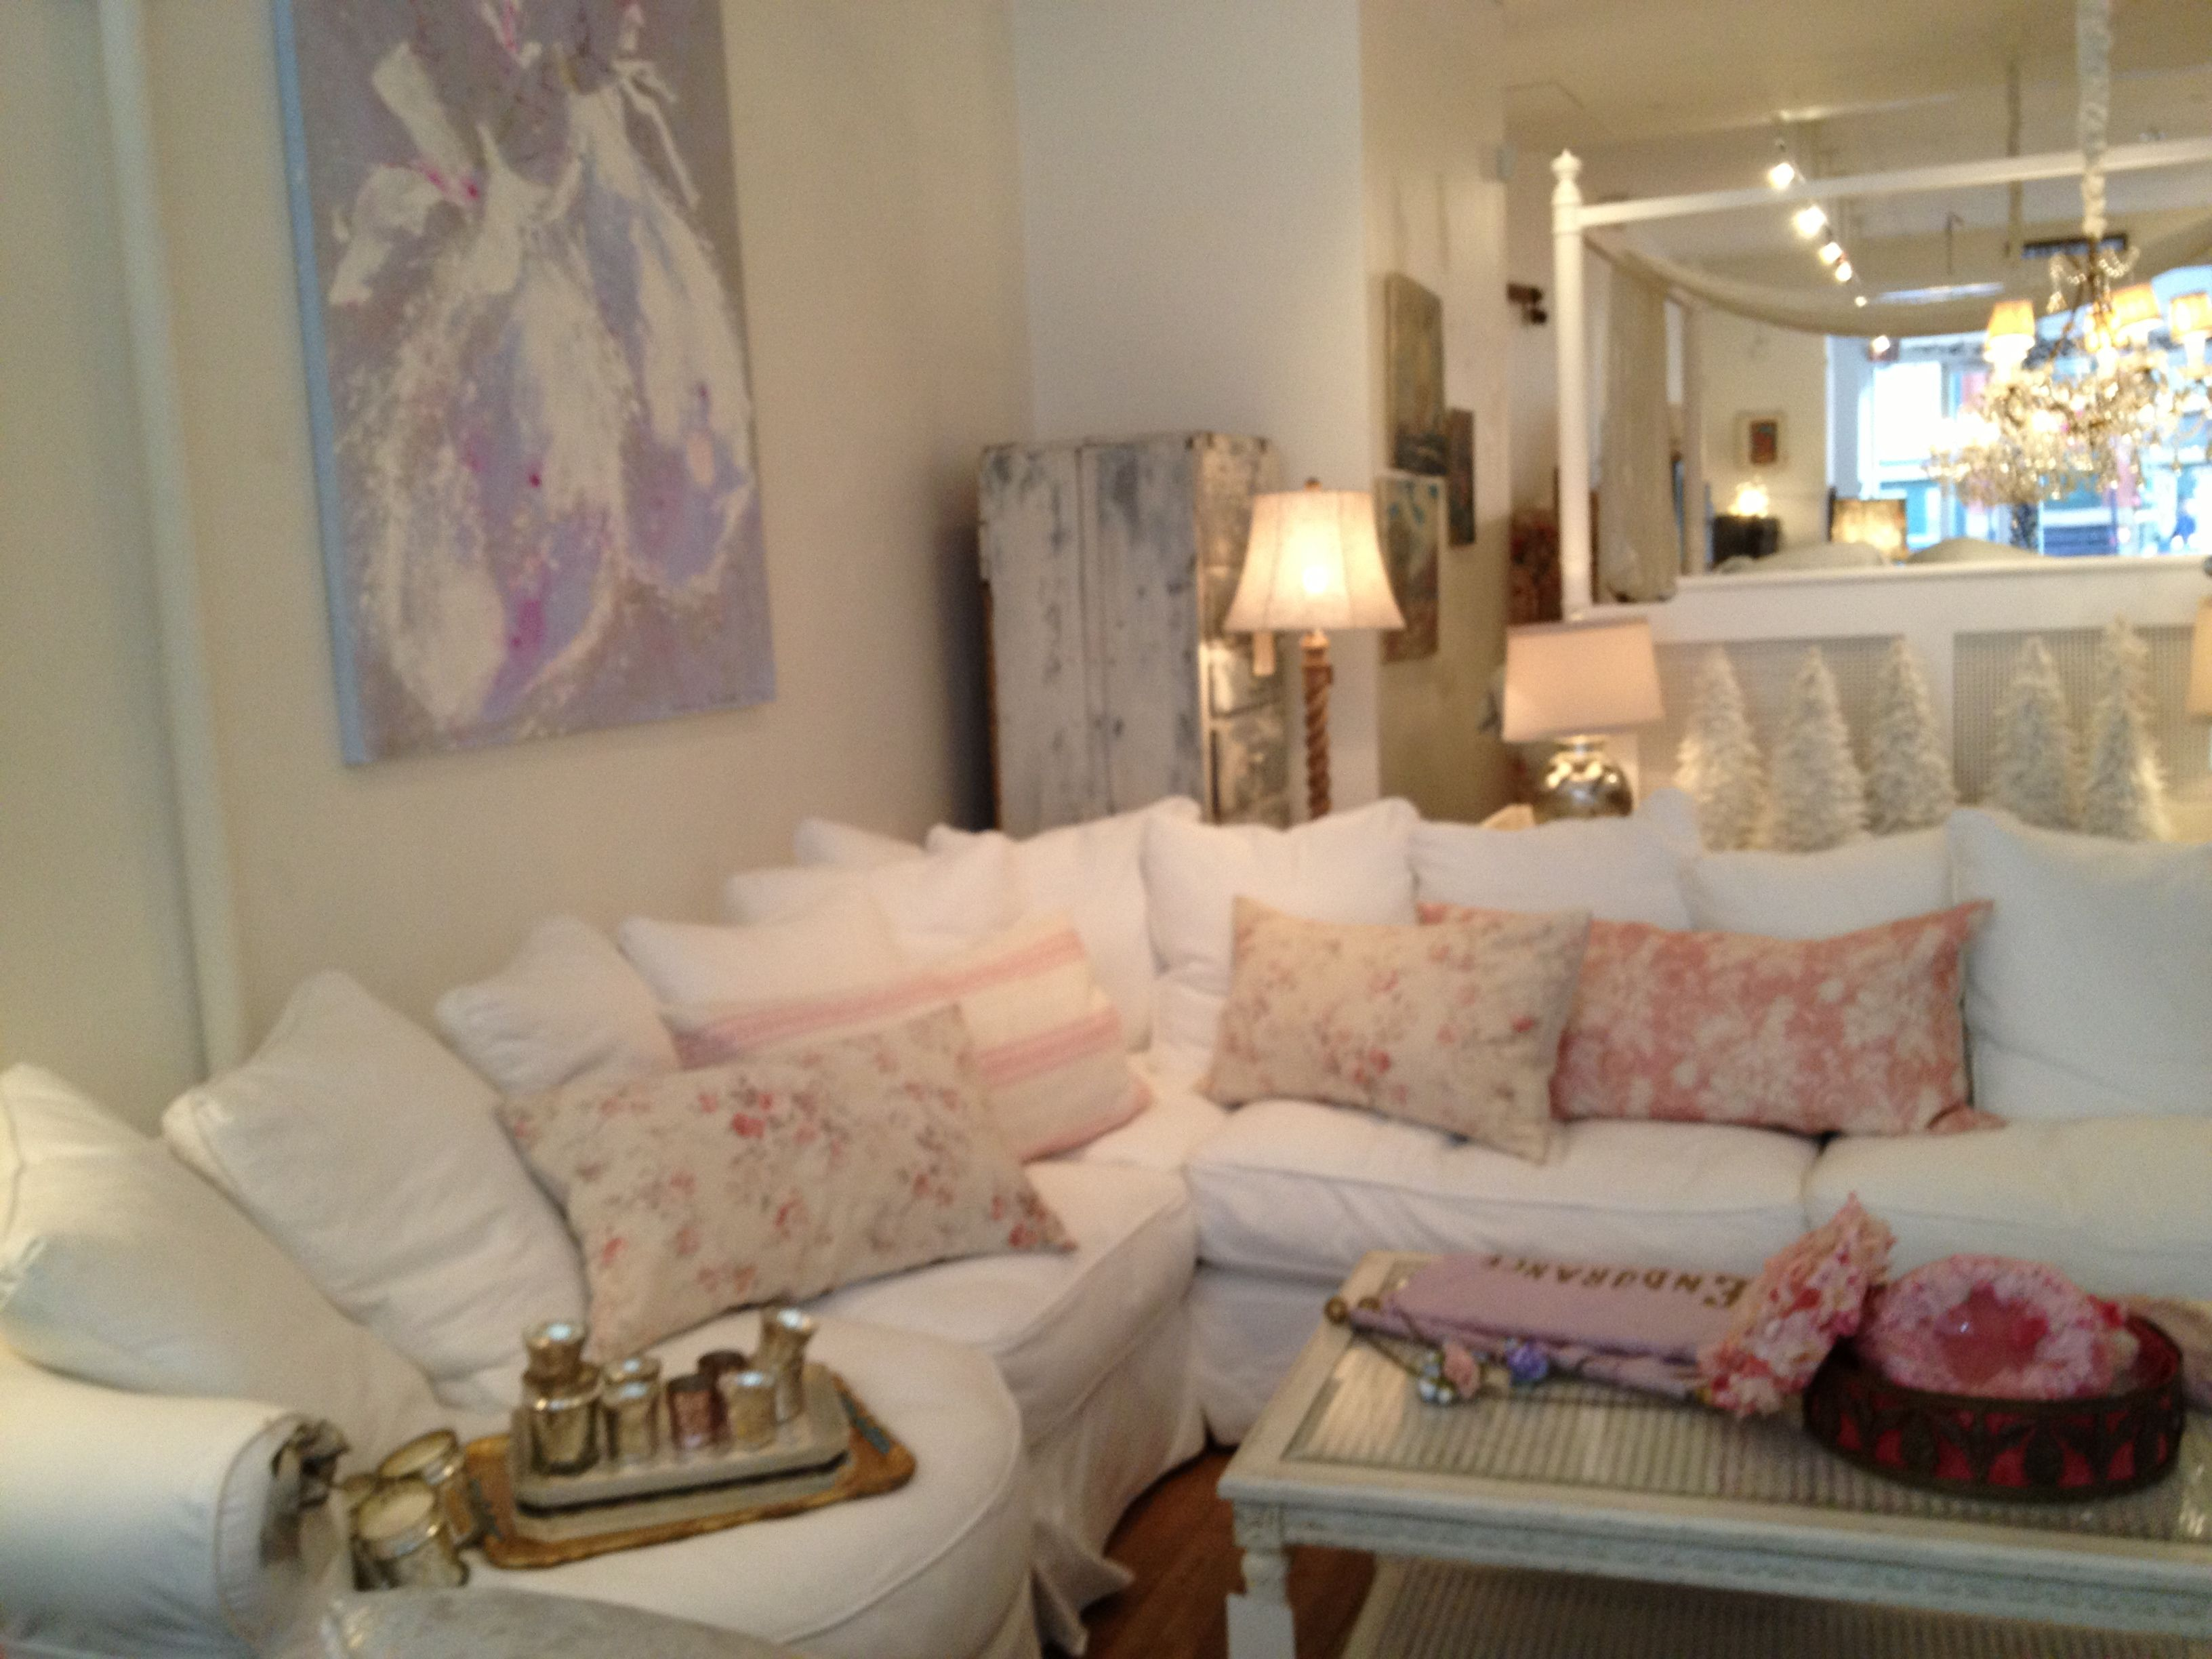 shabby chic furniture nyc. rashel ashwell shabby chic couture nyc store - photo by kathy duvall furniture d